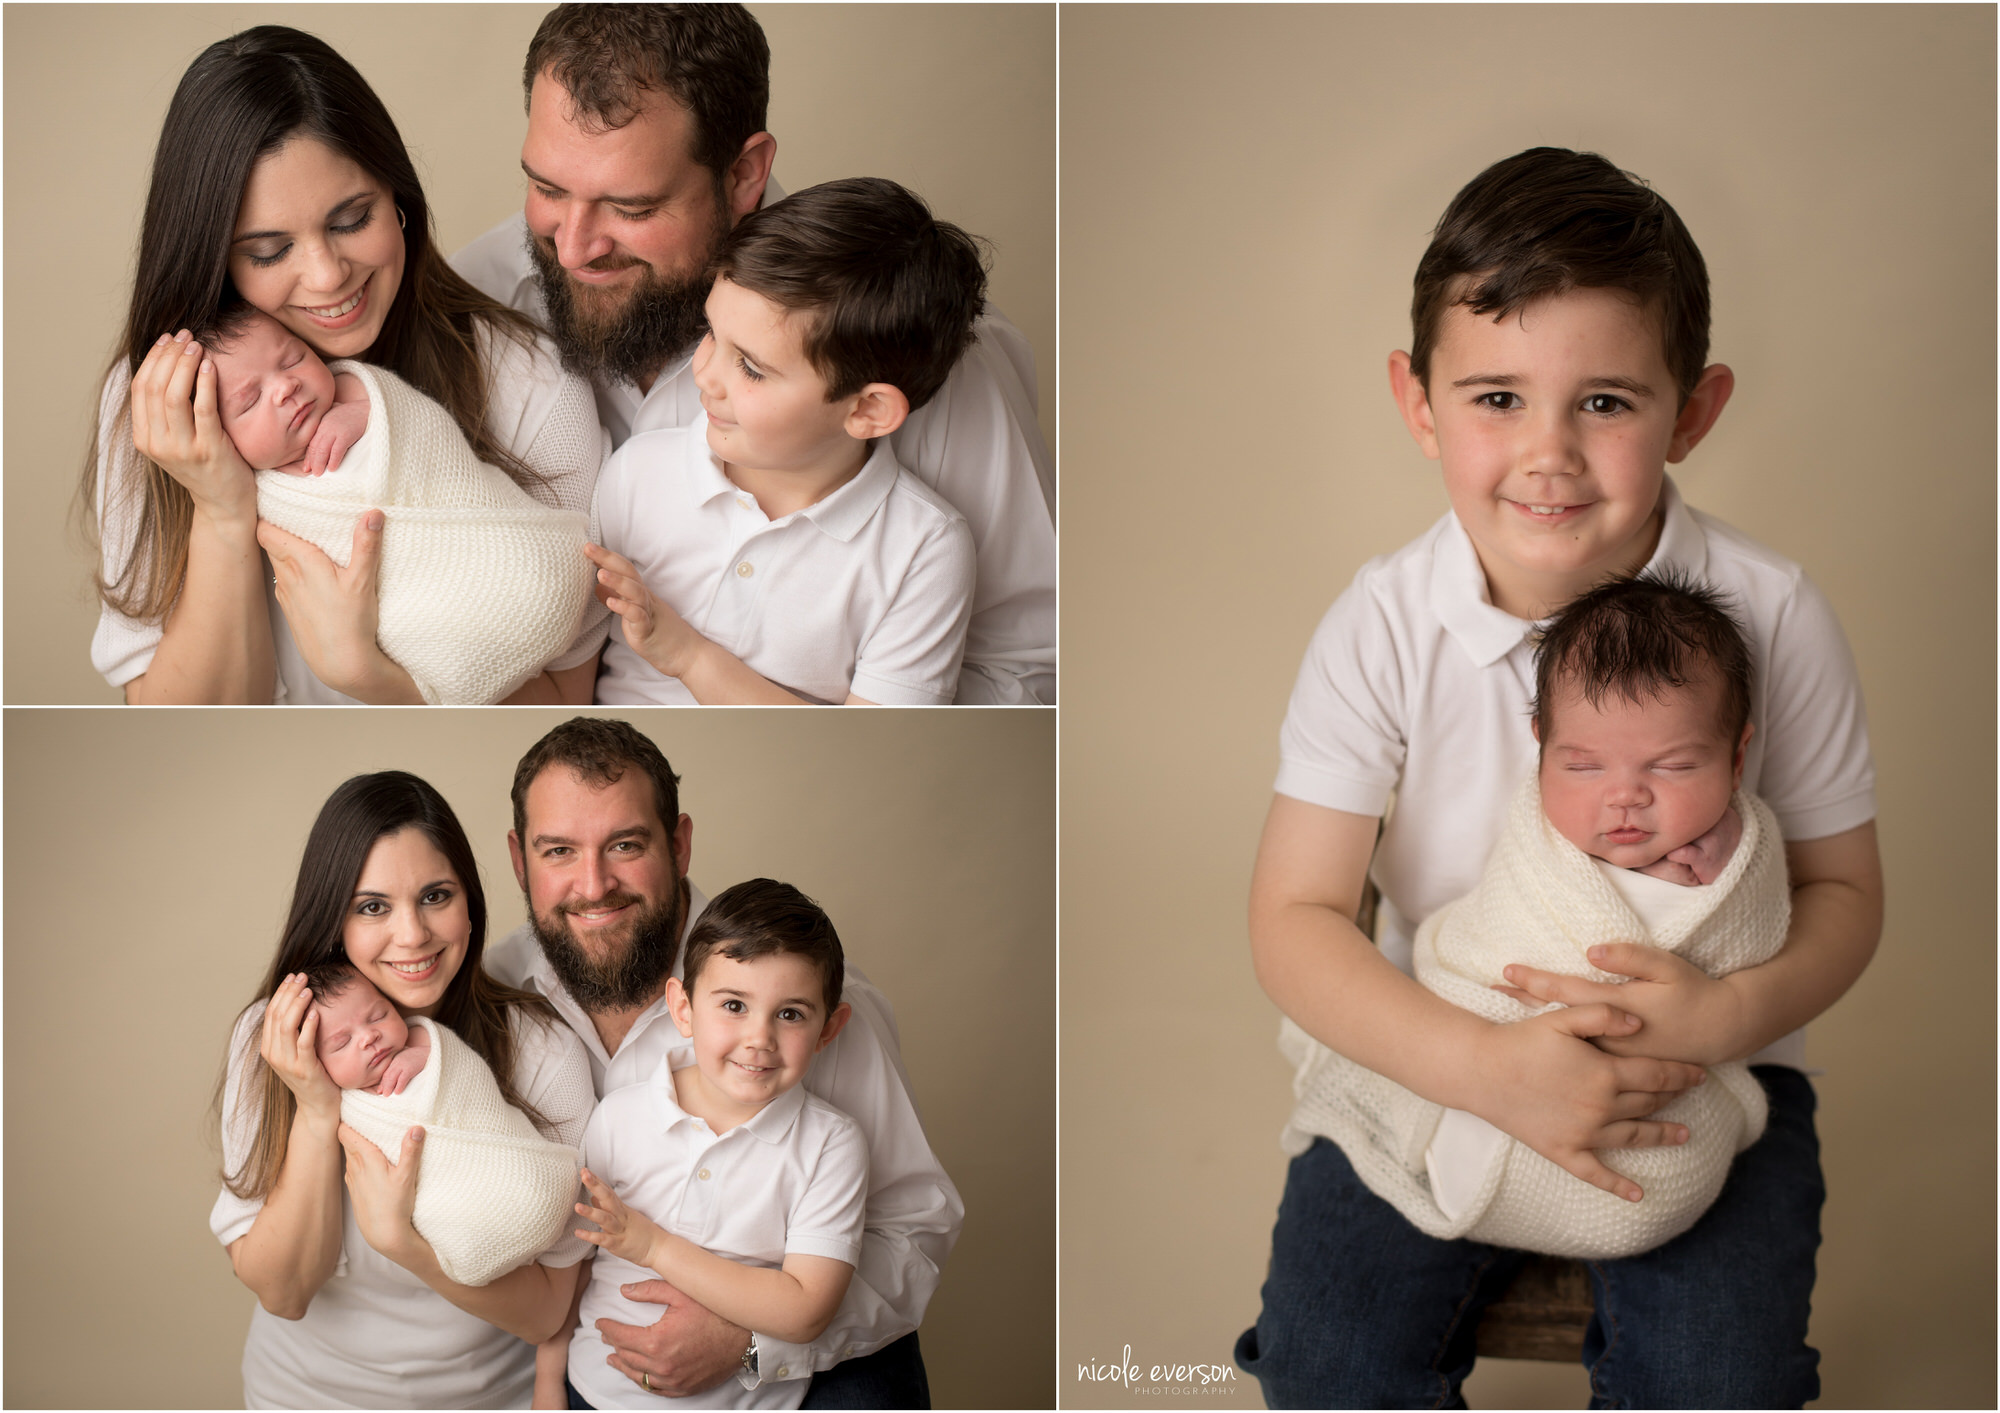 family newborn portraits on cream backdrop